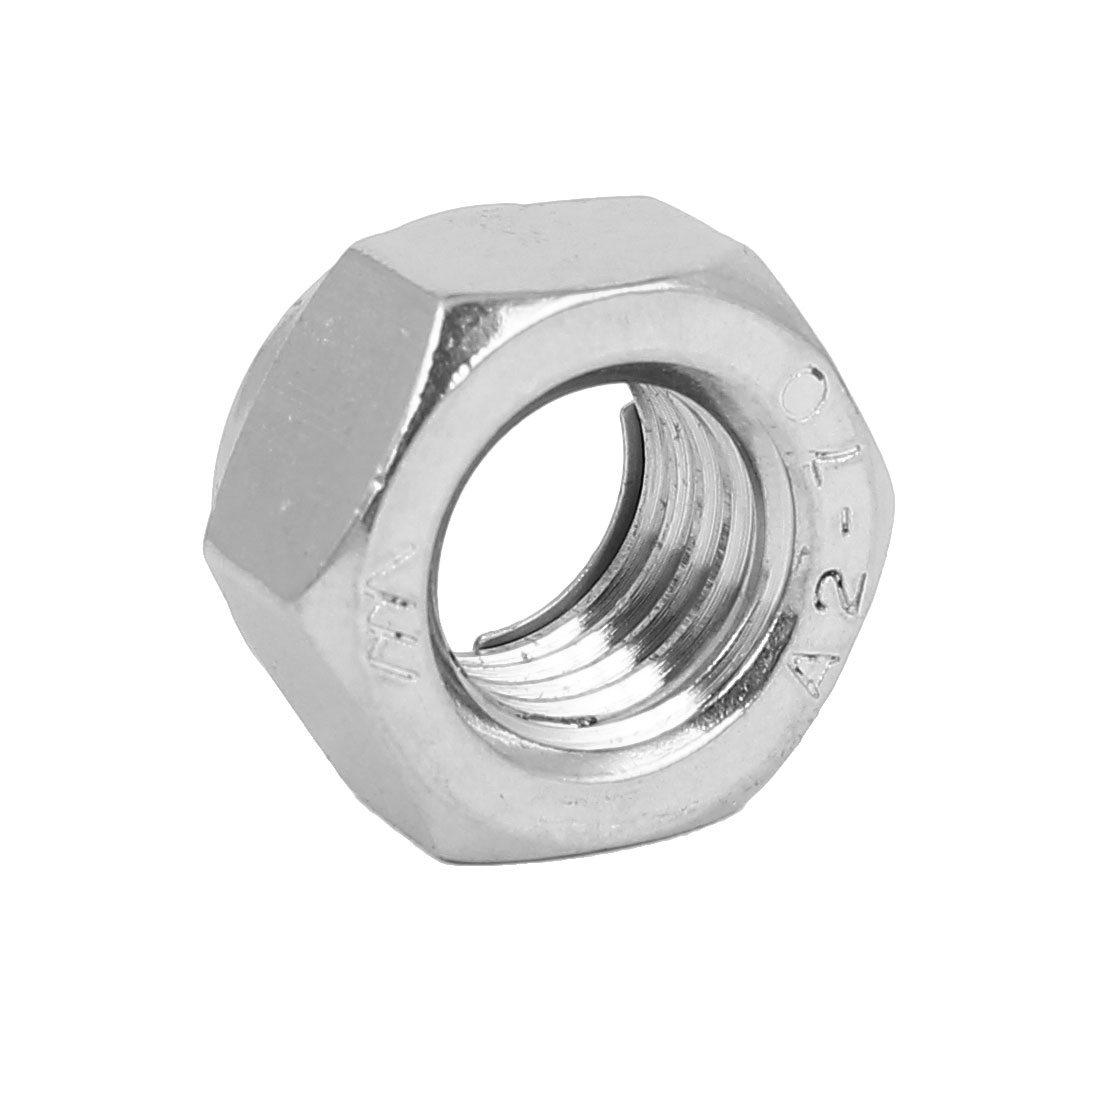 M14 304 Stainless Steel Self-Locking Anti-loose Insert Hex Lock Nut Silver Tone